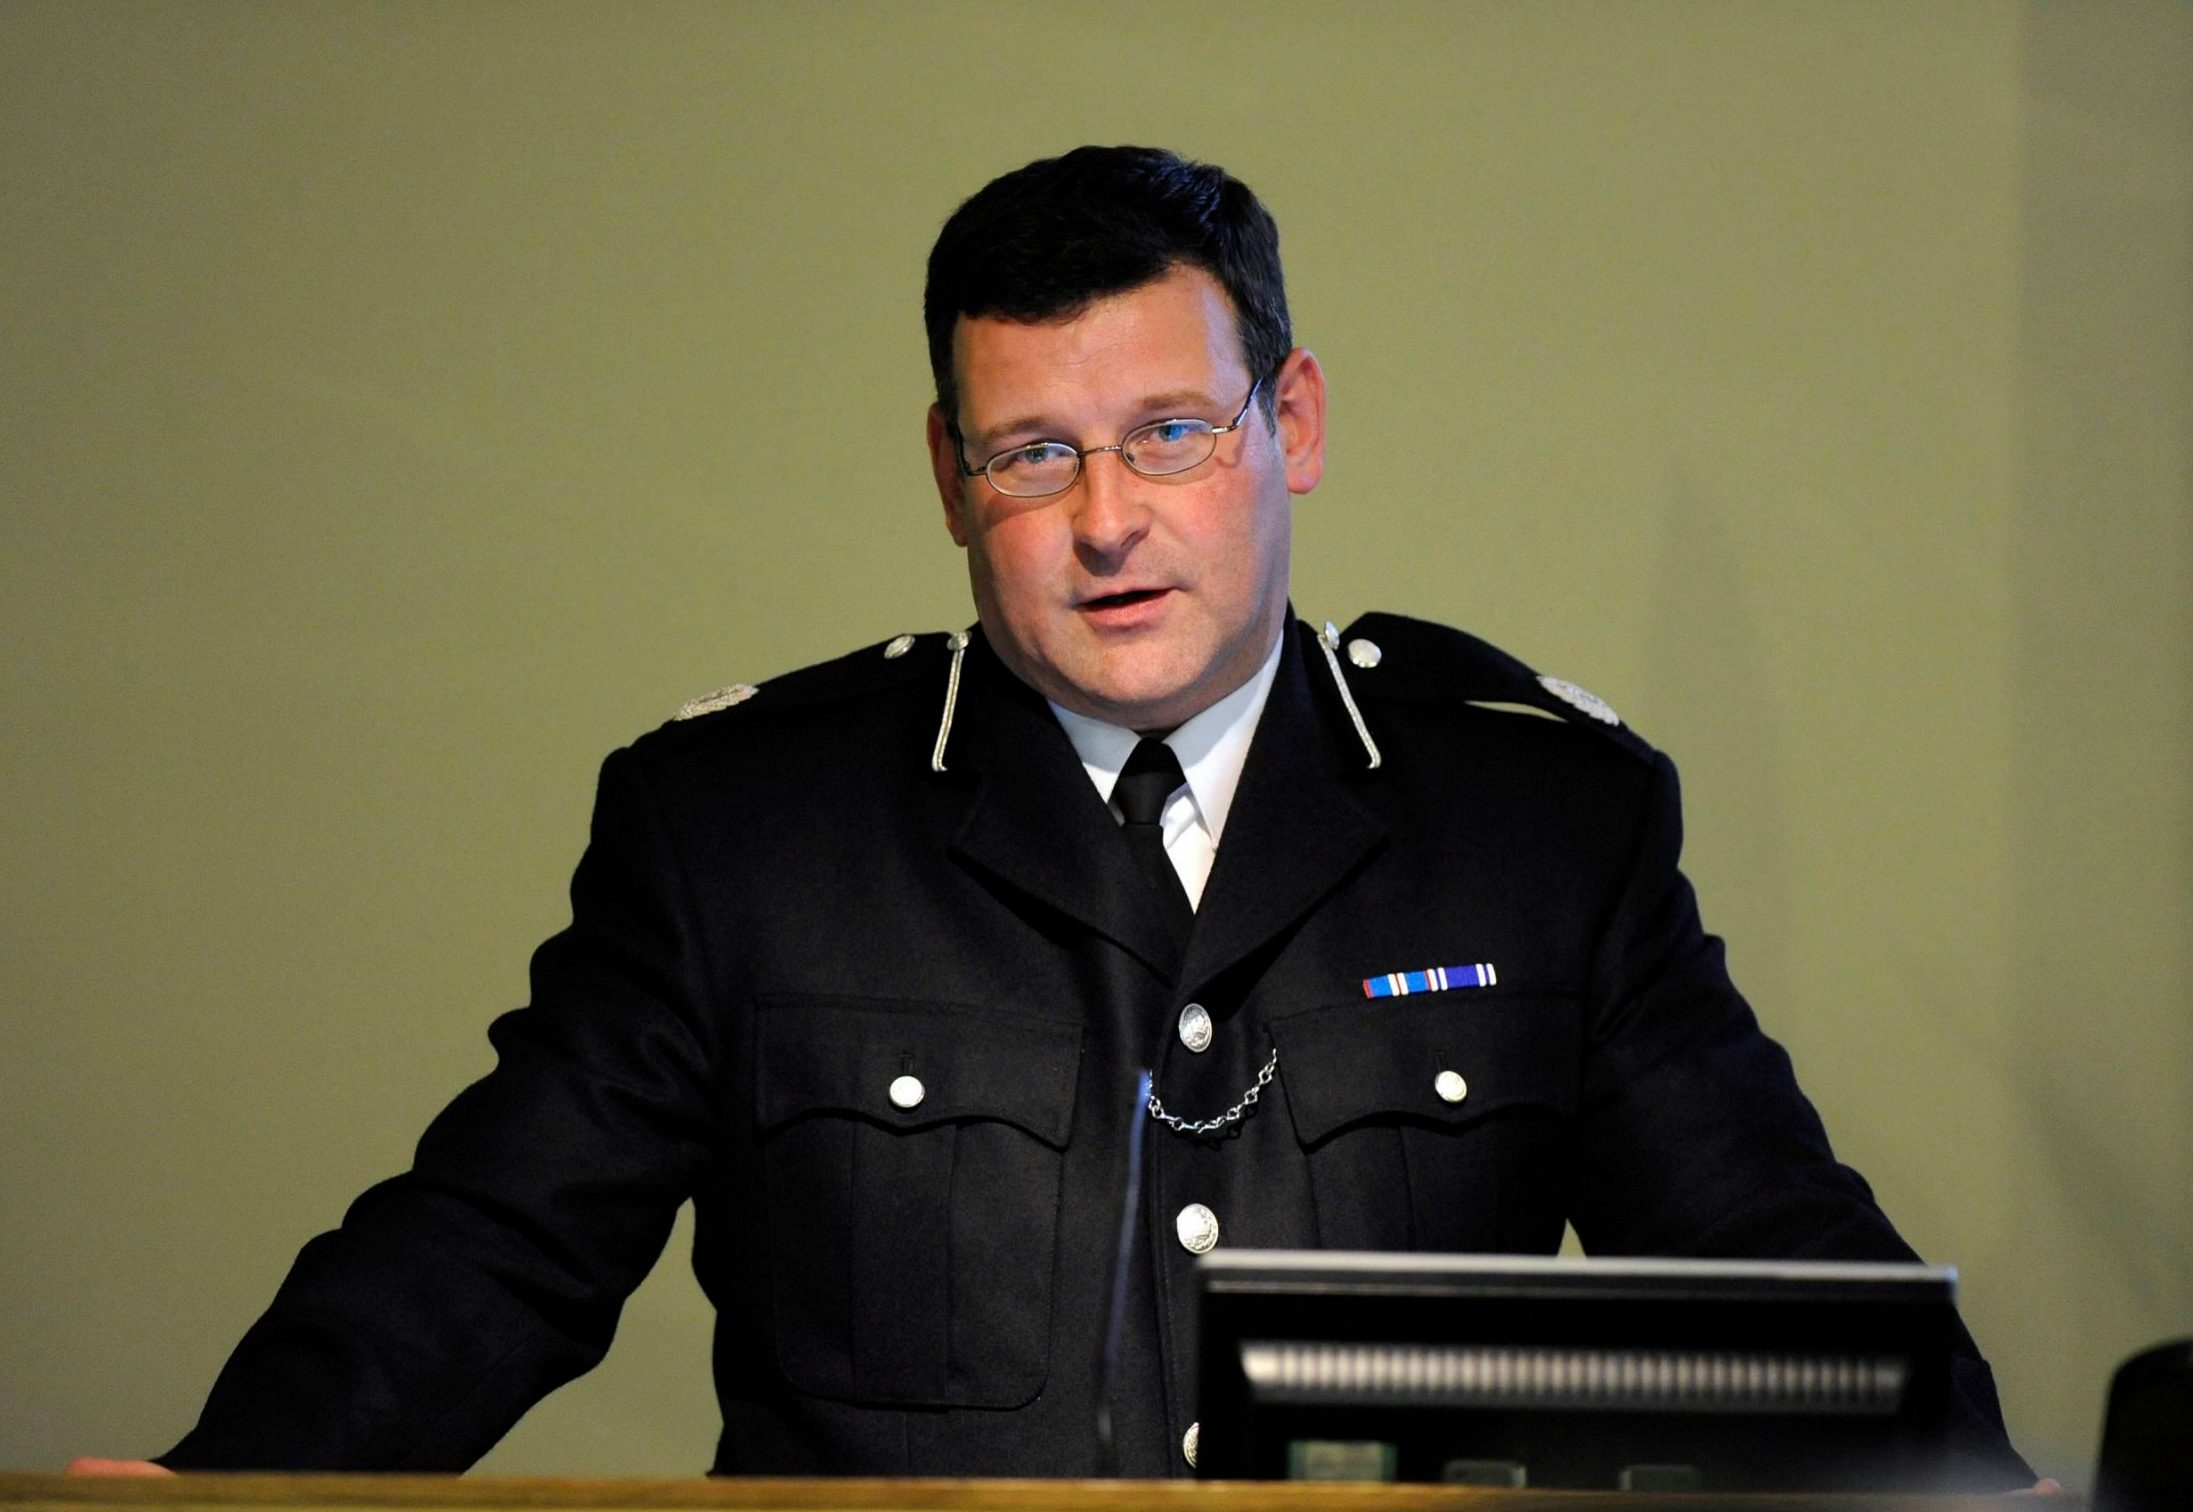 Police refuse to say why they arrested and suspended chief